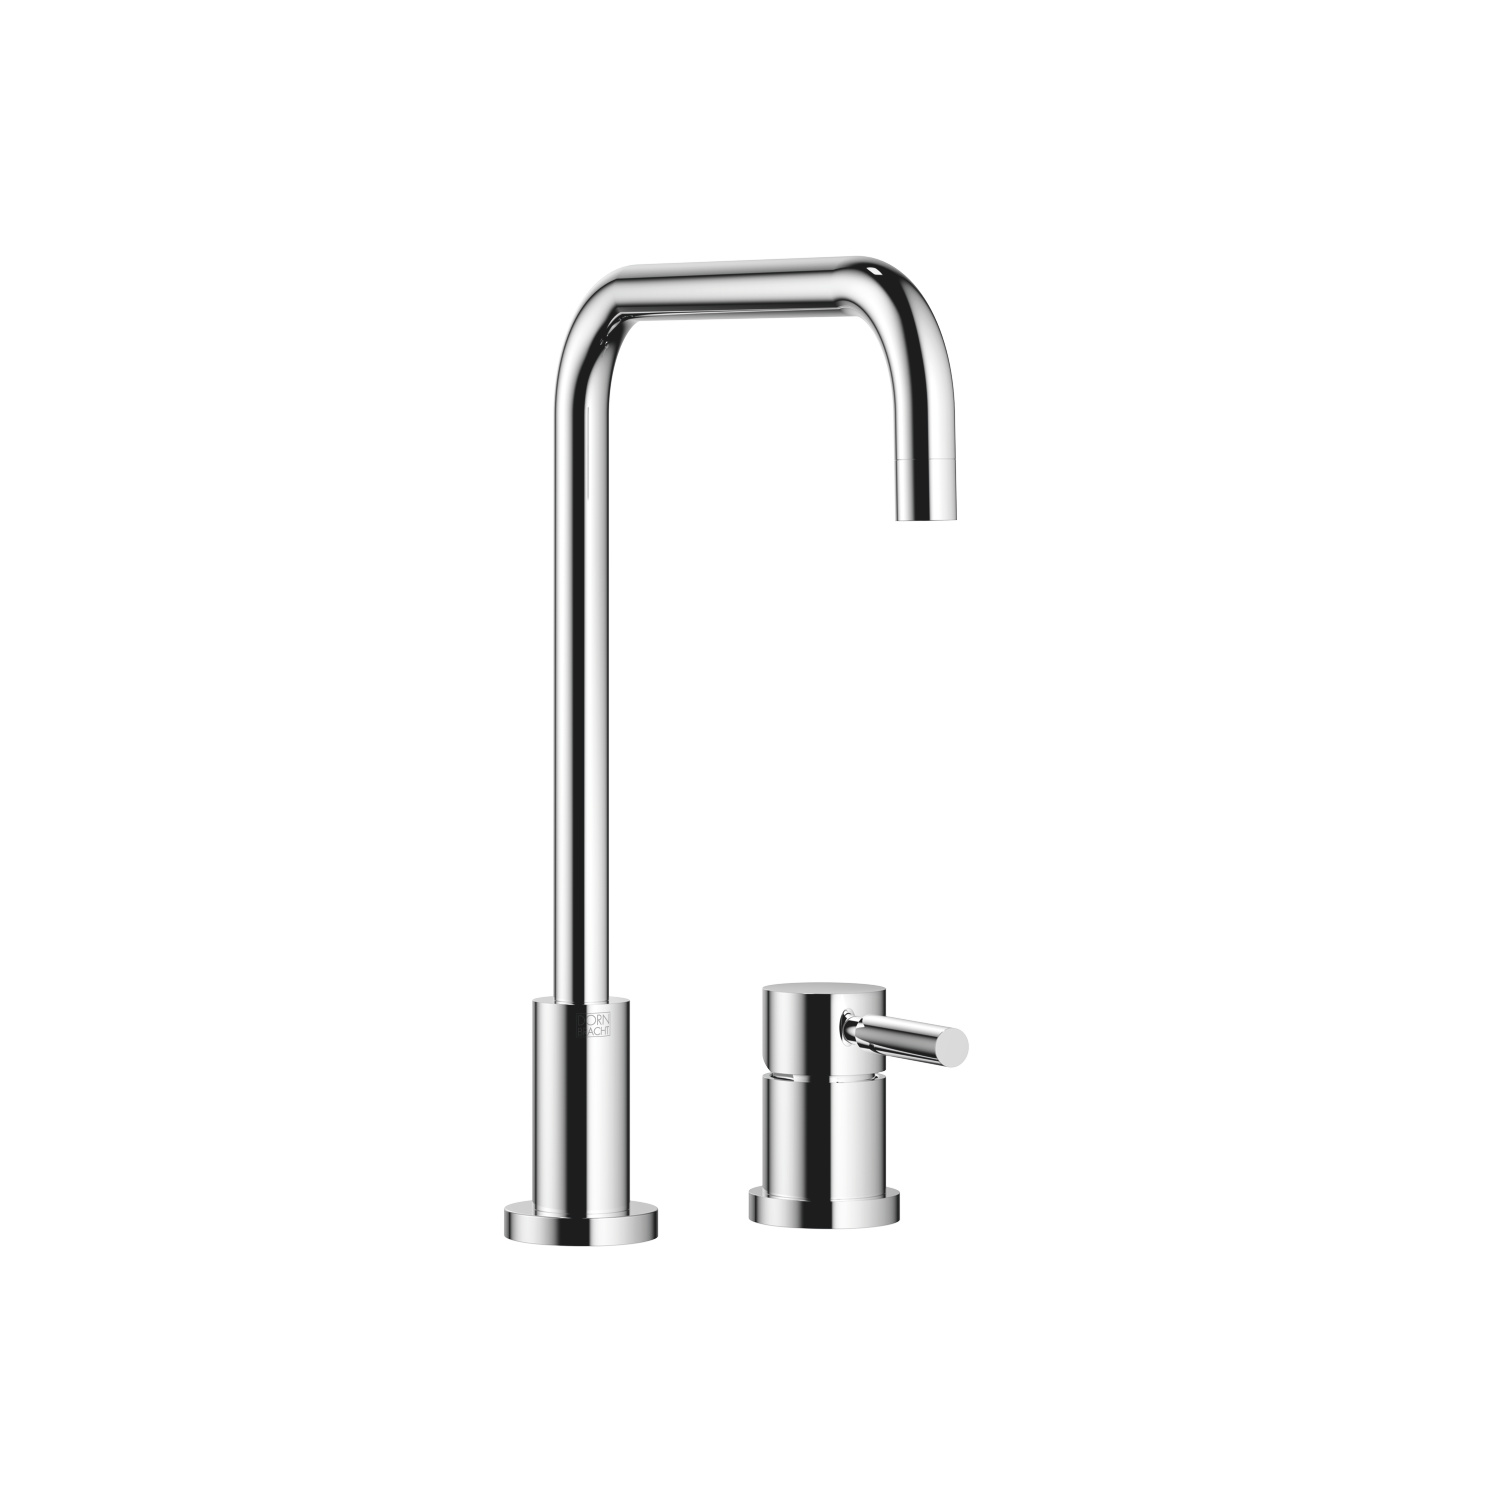 Two-hole mixer with individual rosettes - polished chrome - 32 815 625-00